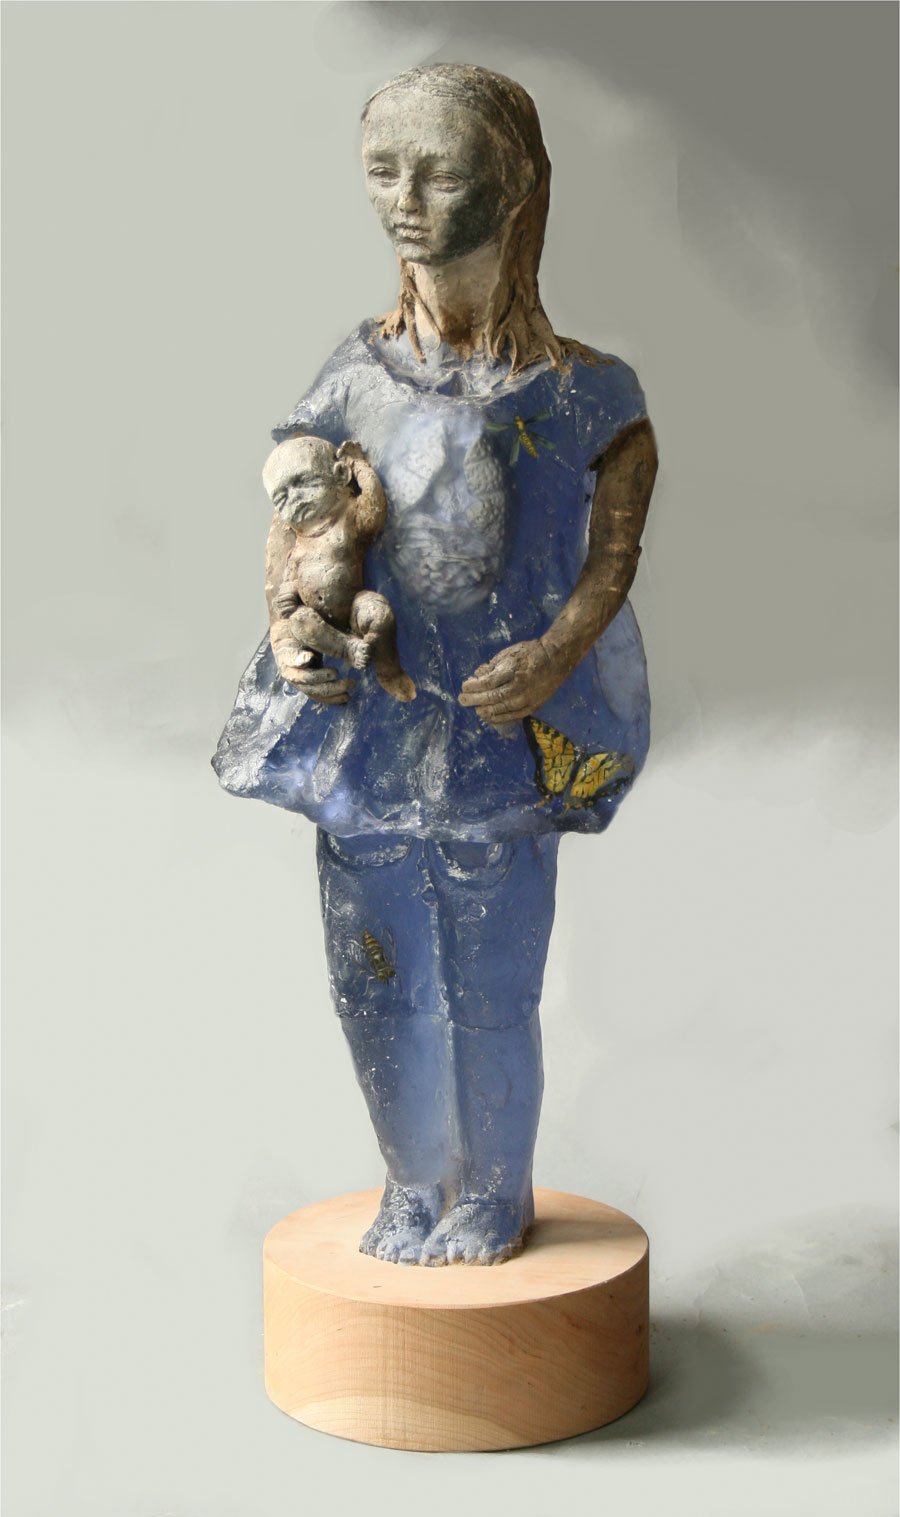 Anatomical Doll With Baby The Art of Christina Bothwell.